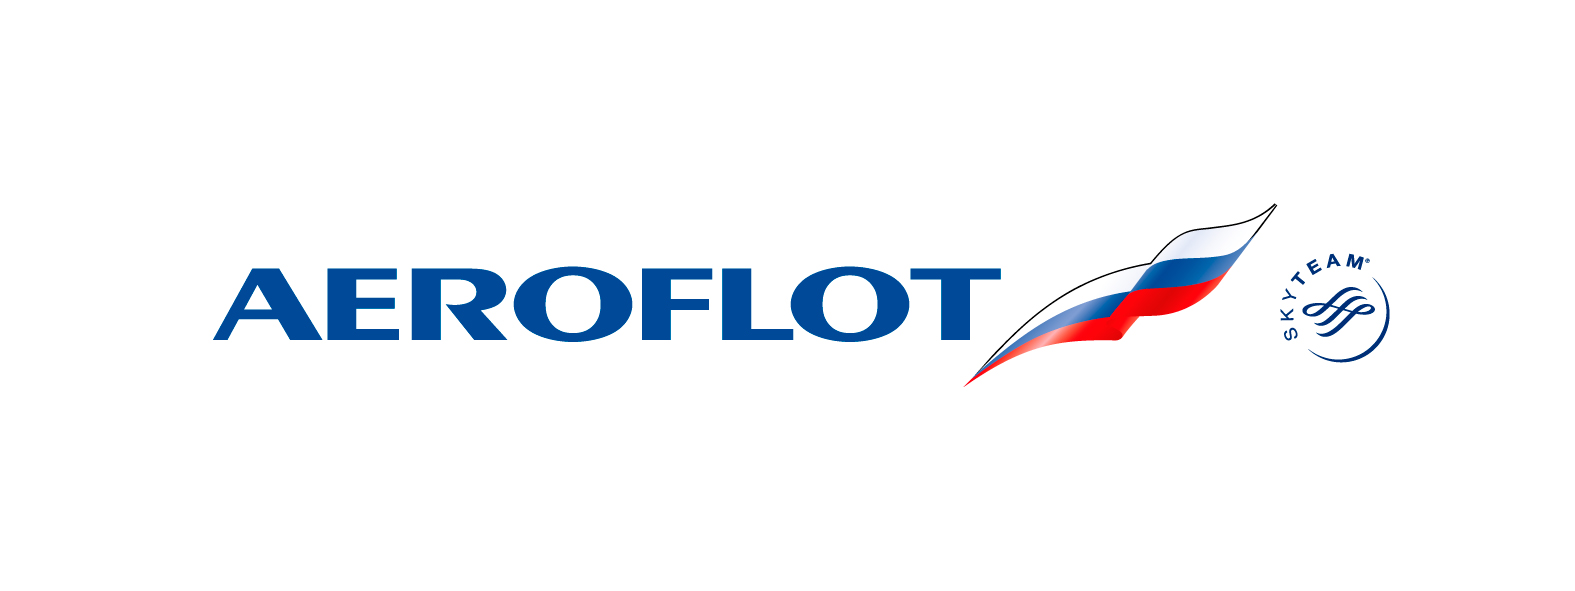 Download the Aeroflot logo - Aeroflot Logo PNG - Aeroflot Vector PNG